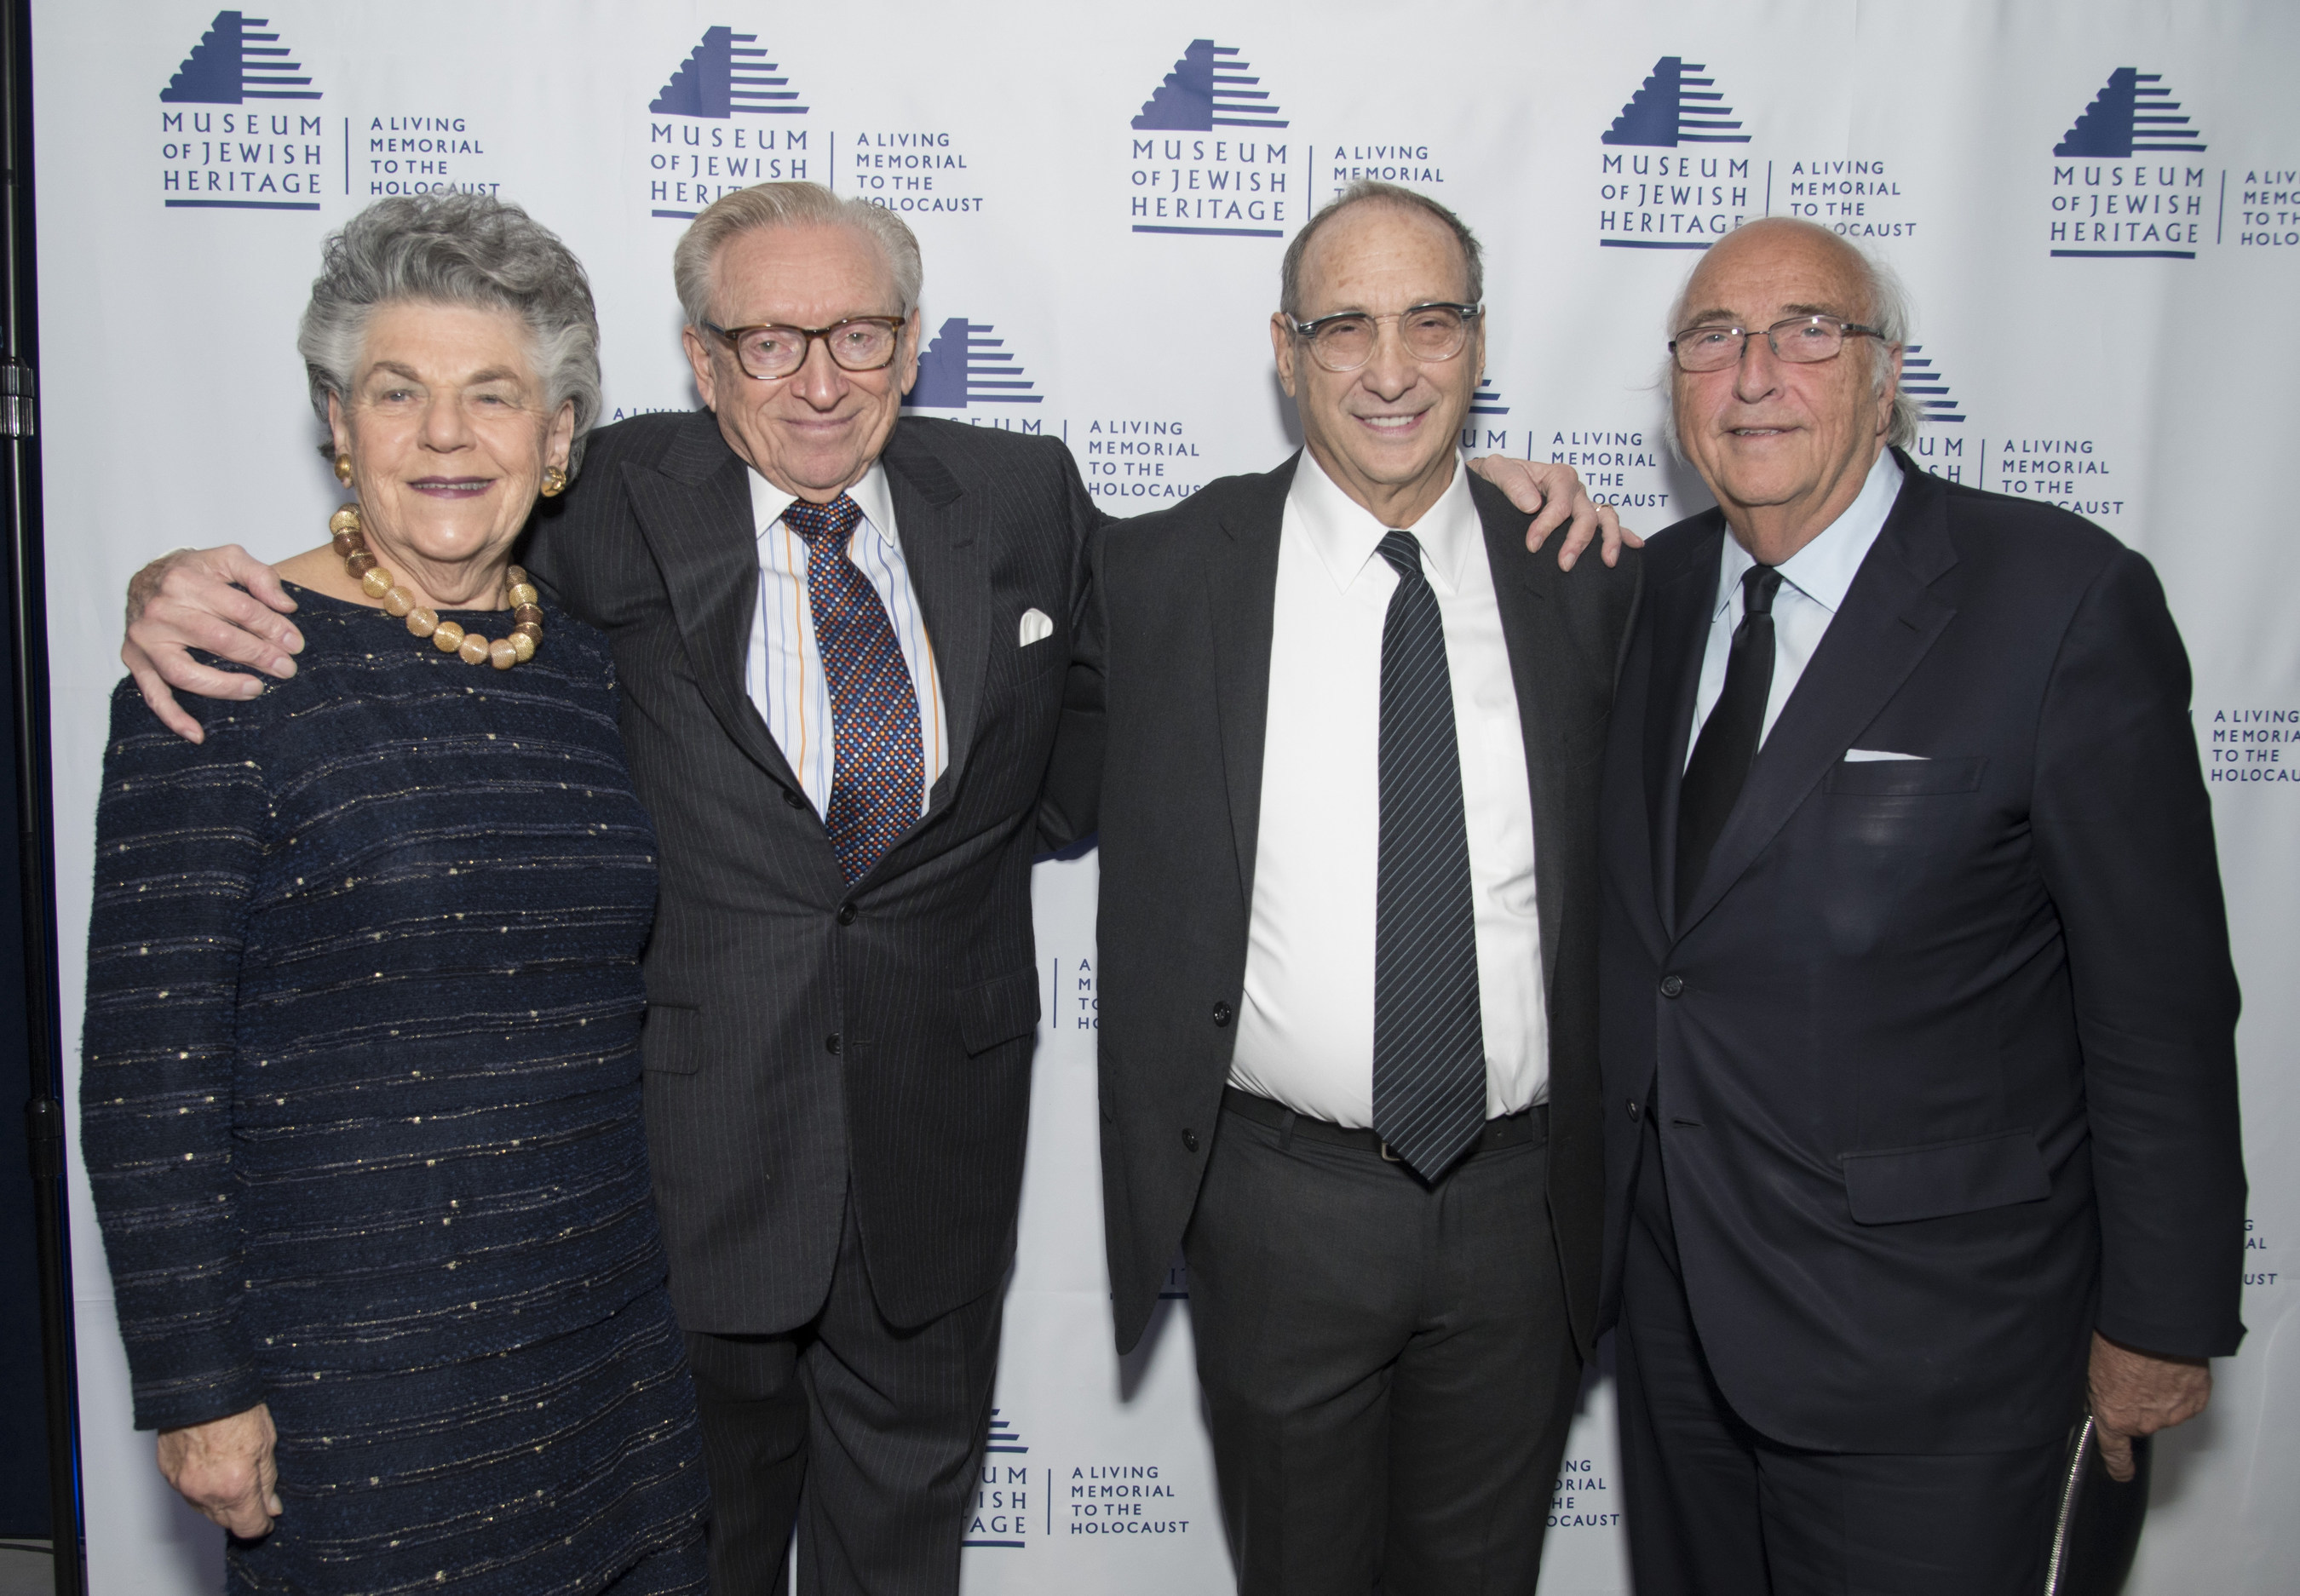 The inaugural luncheon of the Museum of Jewish Heritage - A Living Memorial to the Holocaust Real Estate and Allied Trades Division on October 27 honored Larry Silverstein and his family for their exemplary commitment to the Museum and leadership in rebuilding Lower Manhattan. The event raised over $3.2 million.